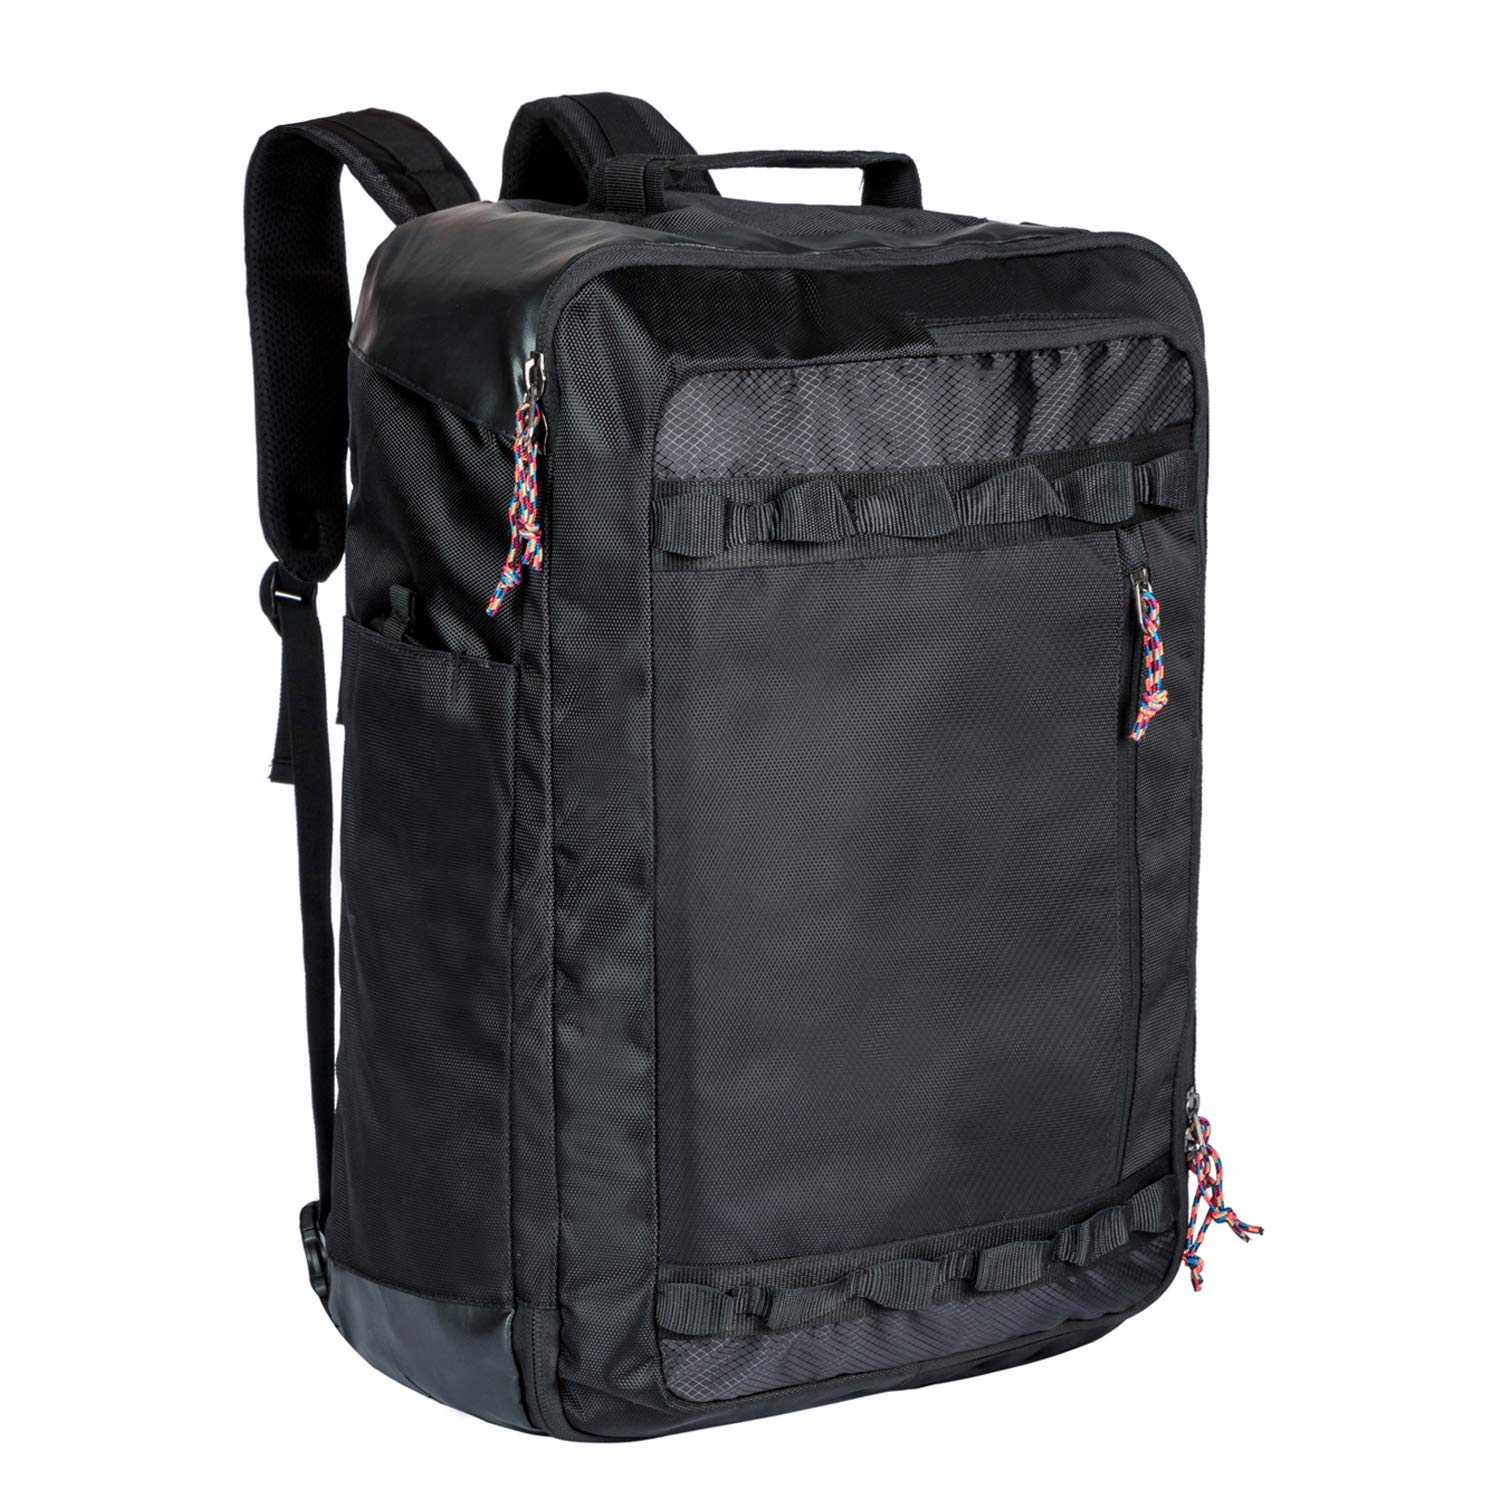 809d3a653a20 Amazon.com  TrailKicker Carry on Backpack